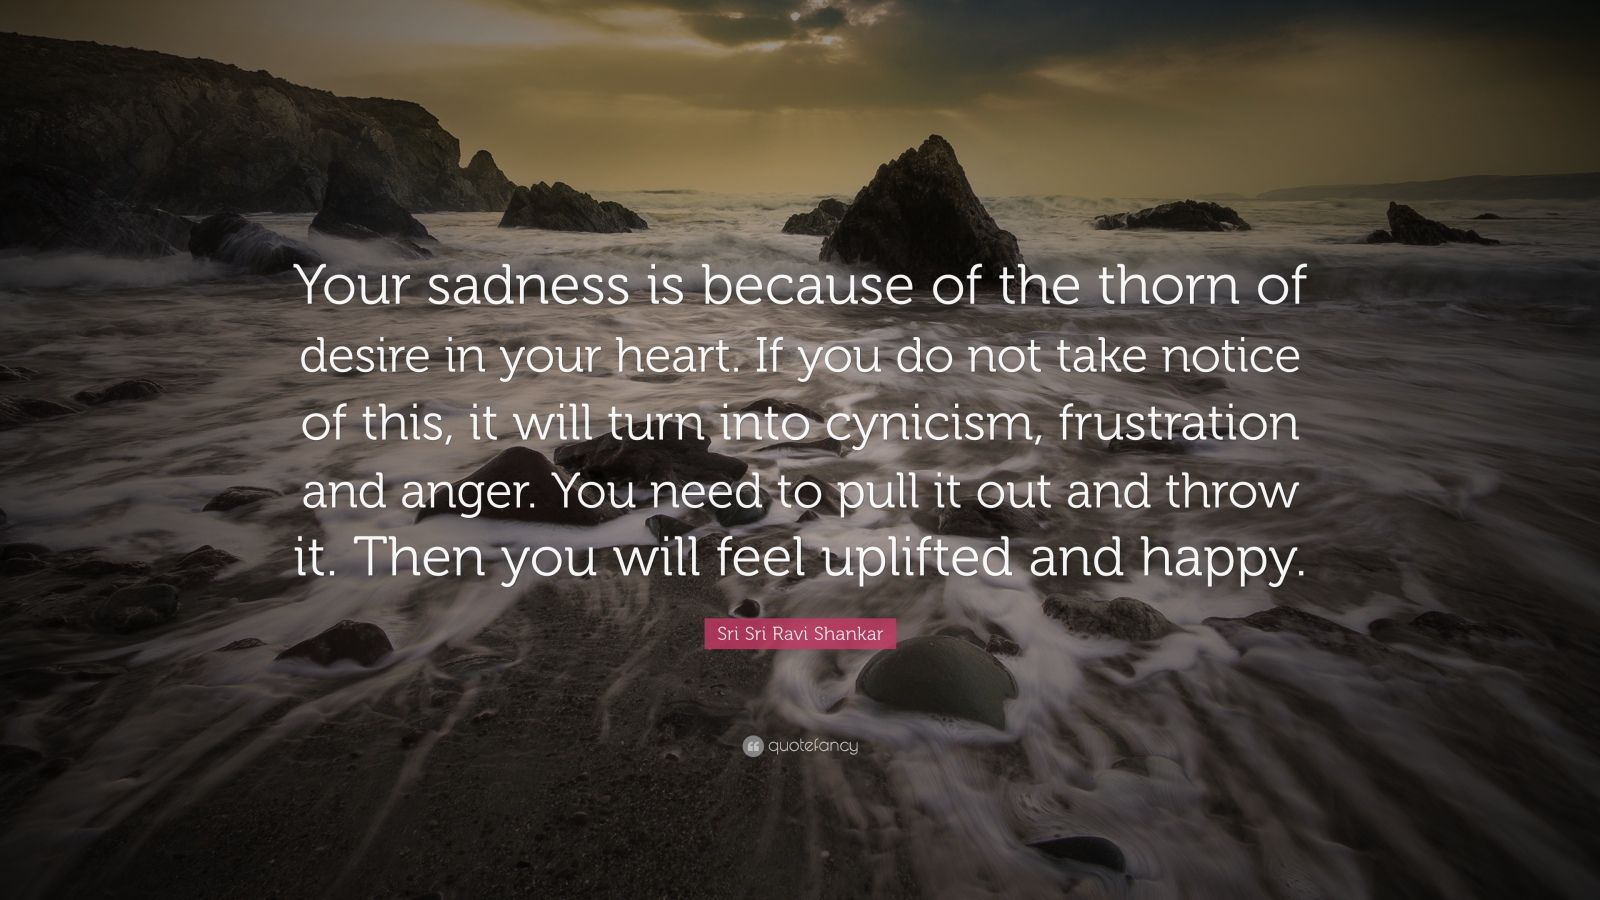 """Sri Sri Ravi Shankar Quote: """"Your sadness is because of the thorn of desire in your heart. If you do not take notice of this, it will turn into cynicism, frustration and  anger. You need to pull it out  and throw it. Then you will  feel uplifted and happy."""""""